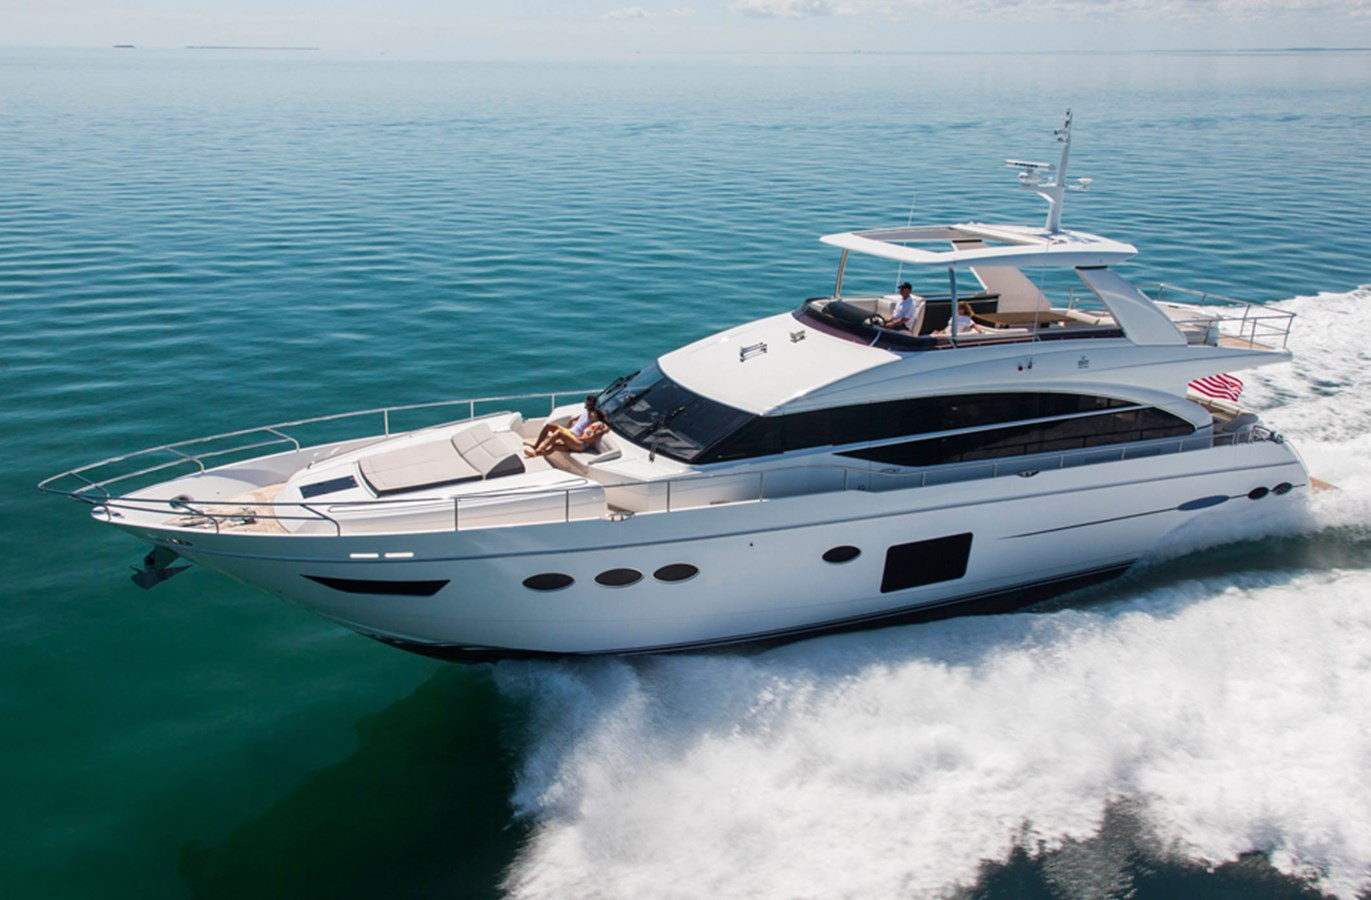 New princess 82 flybridge motor yacht for sale galati for Large motor yachts for sale